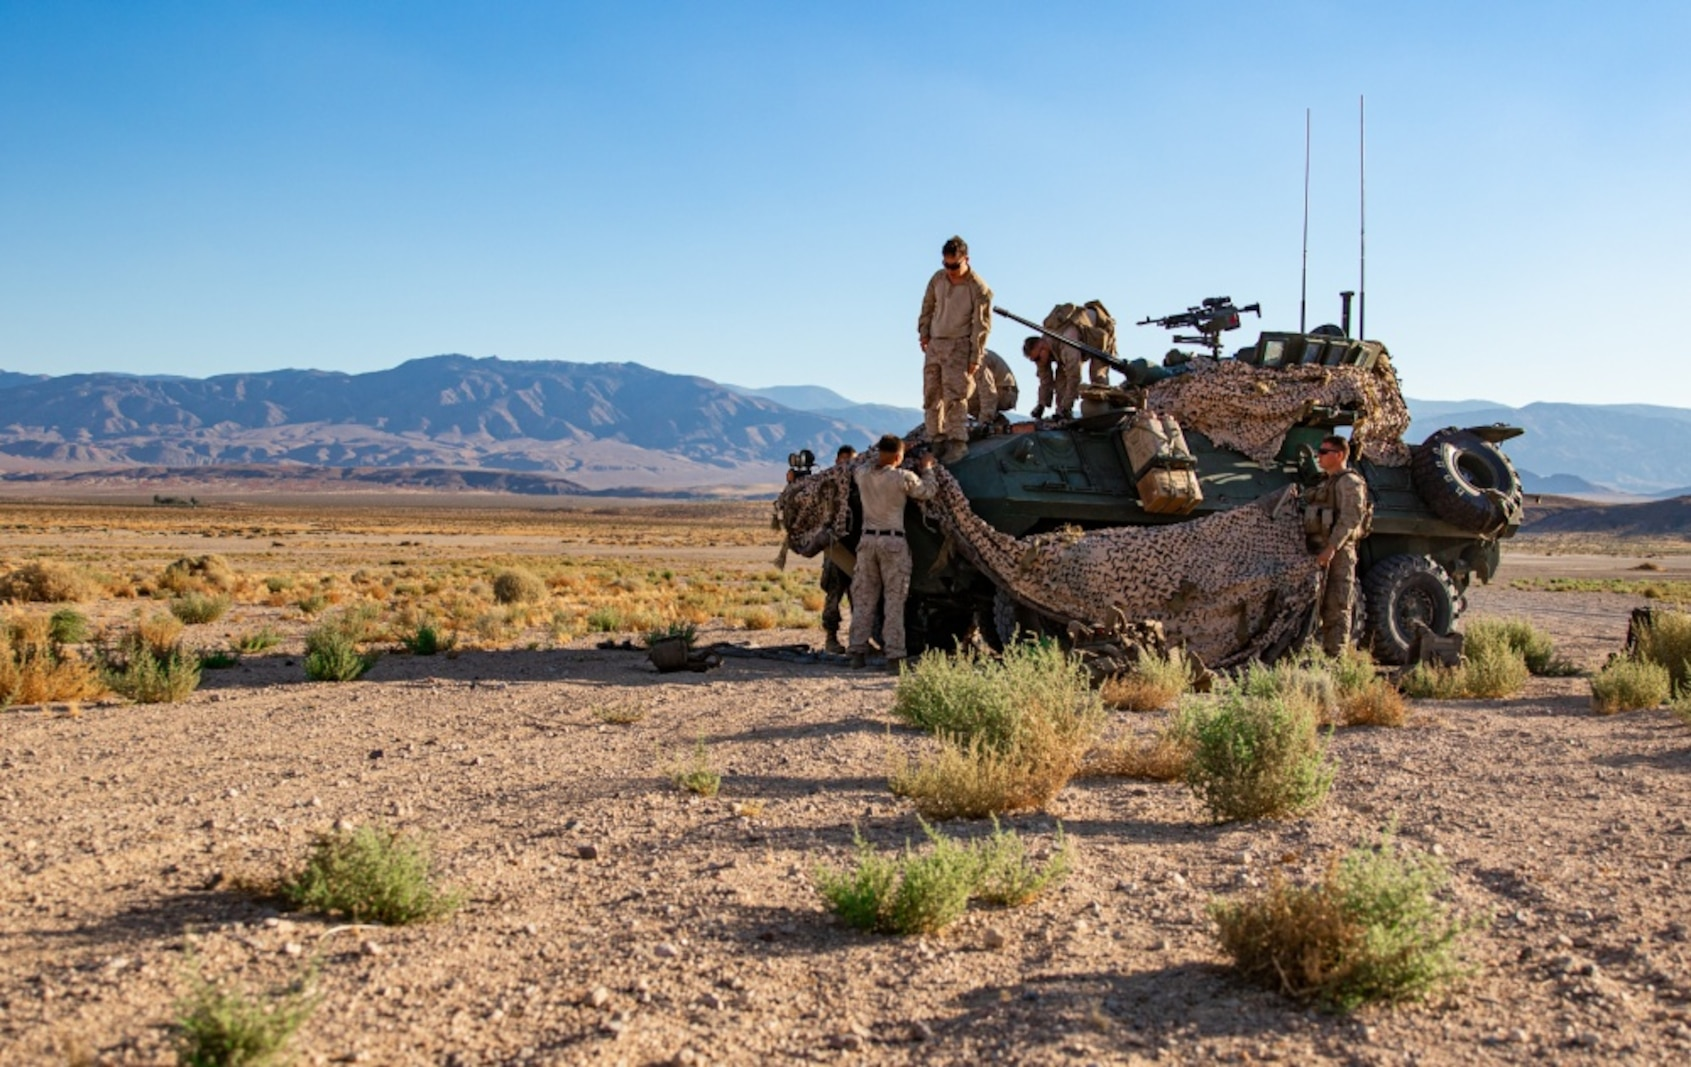 U.S. Marines with 3rd Light Armored Reconnaissance Battalion, 1st Marine Division, camouflage a Light Armored Vehicle during a Marine Corps Combat Readiness Evaluation (MCCRE) at Marine Corps Air Ground Combat Center Twentynine Palms, California, Sept. 6, 2019. The MCCRE is used to formally evaluate Marines on their combat readiness prior to their upcoming deployment. (U.S. Marine Corps photo by Lance Cpl. Roxanna Ortiz)